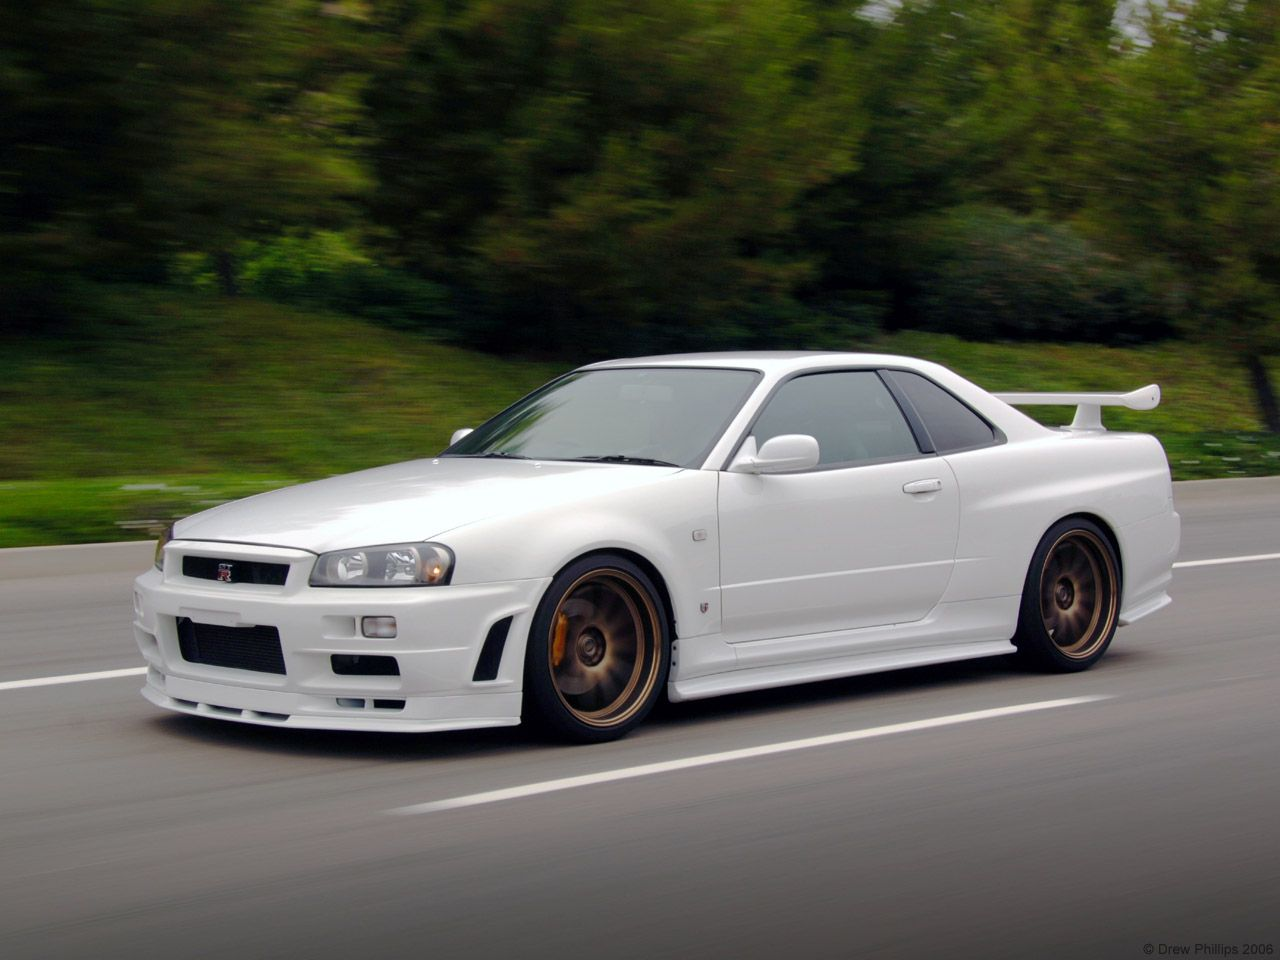 Nissan skyline r34 gt r paradigm auto detailing - Find This Pin And More On Auto Swag Nissan Skyline Gt R